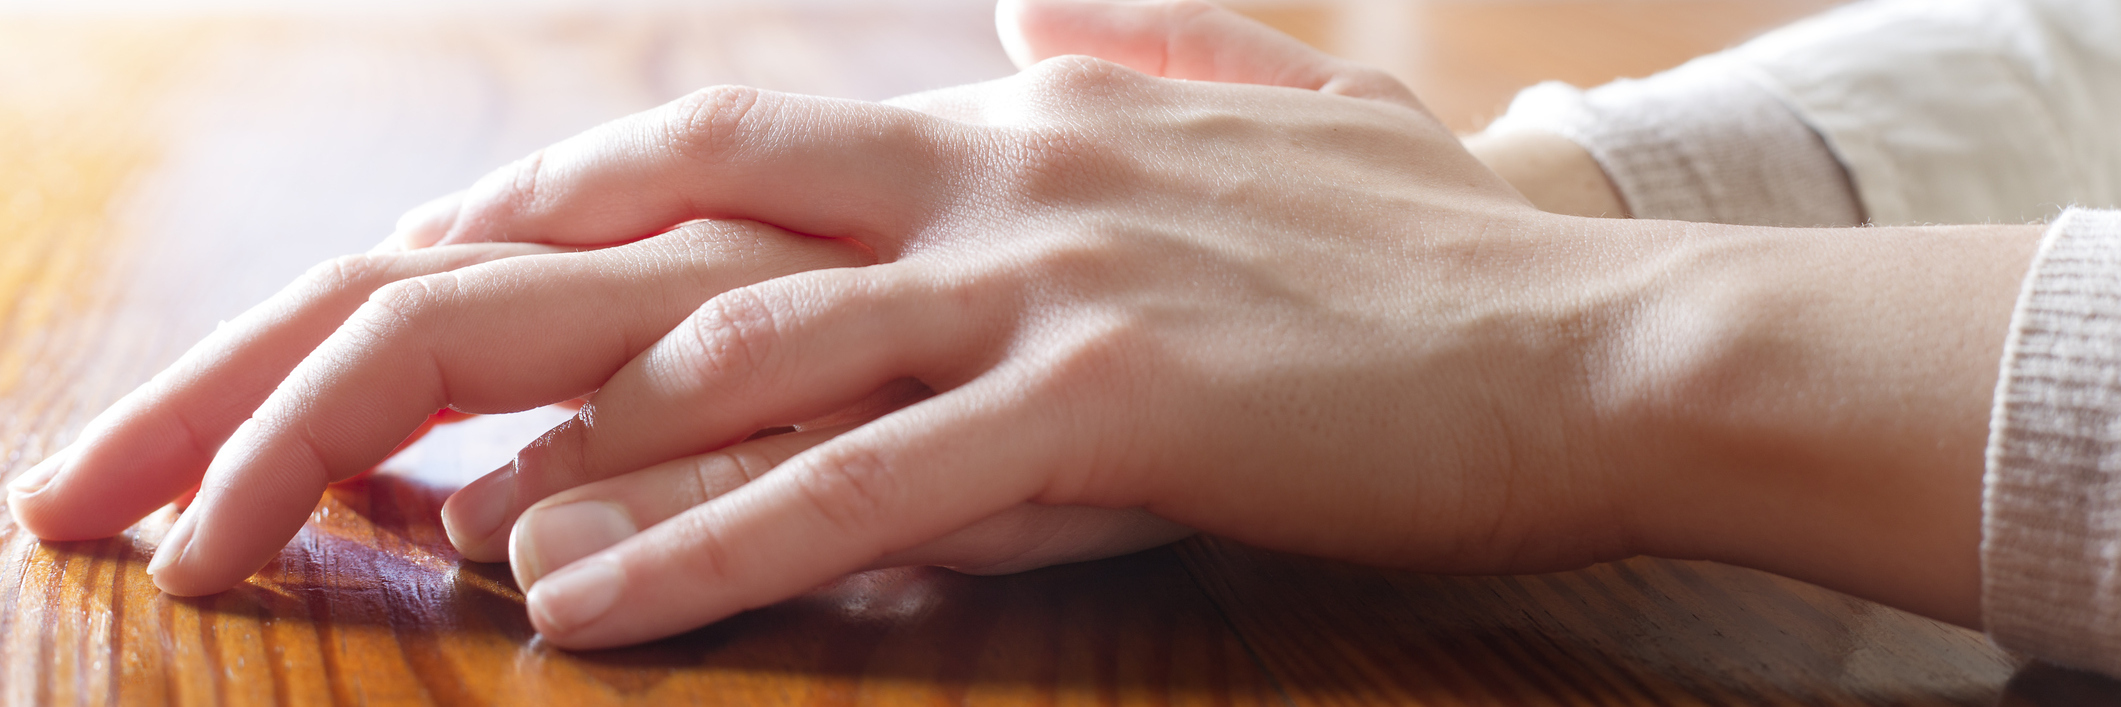 woman's hands on wooden table